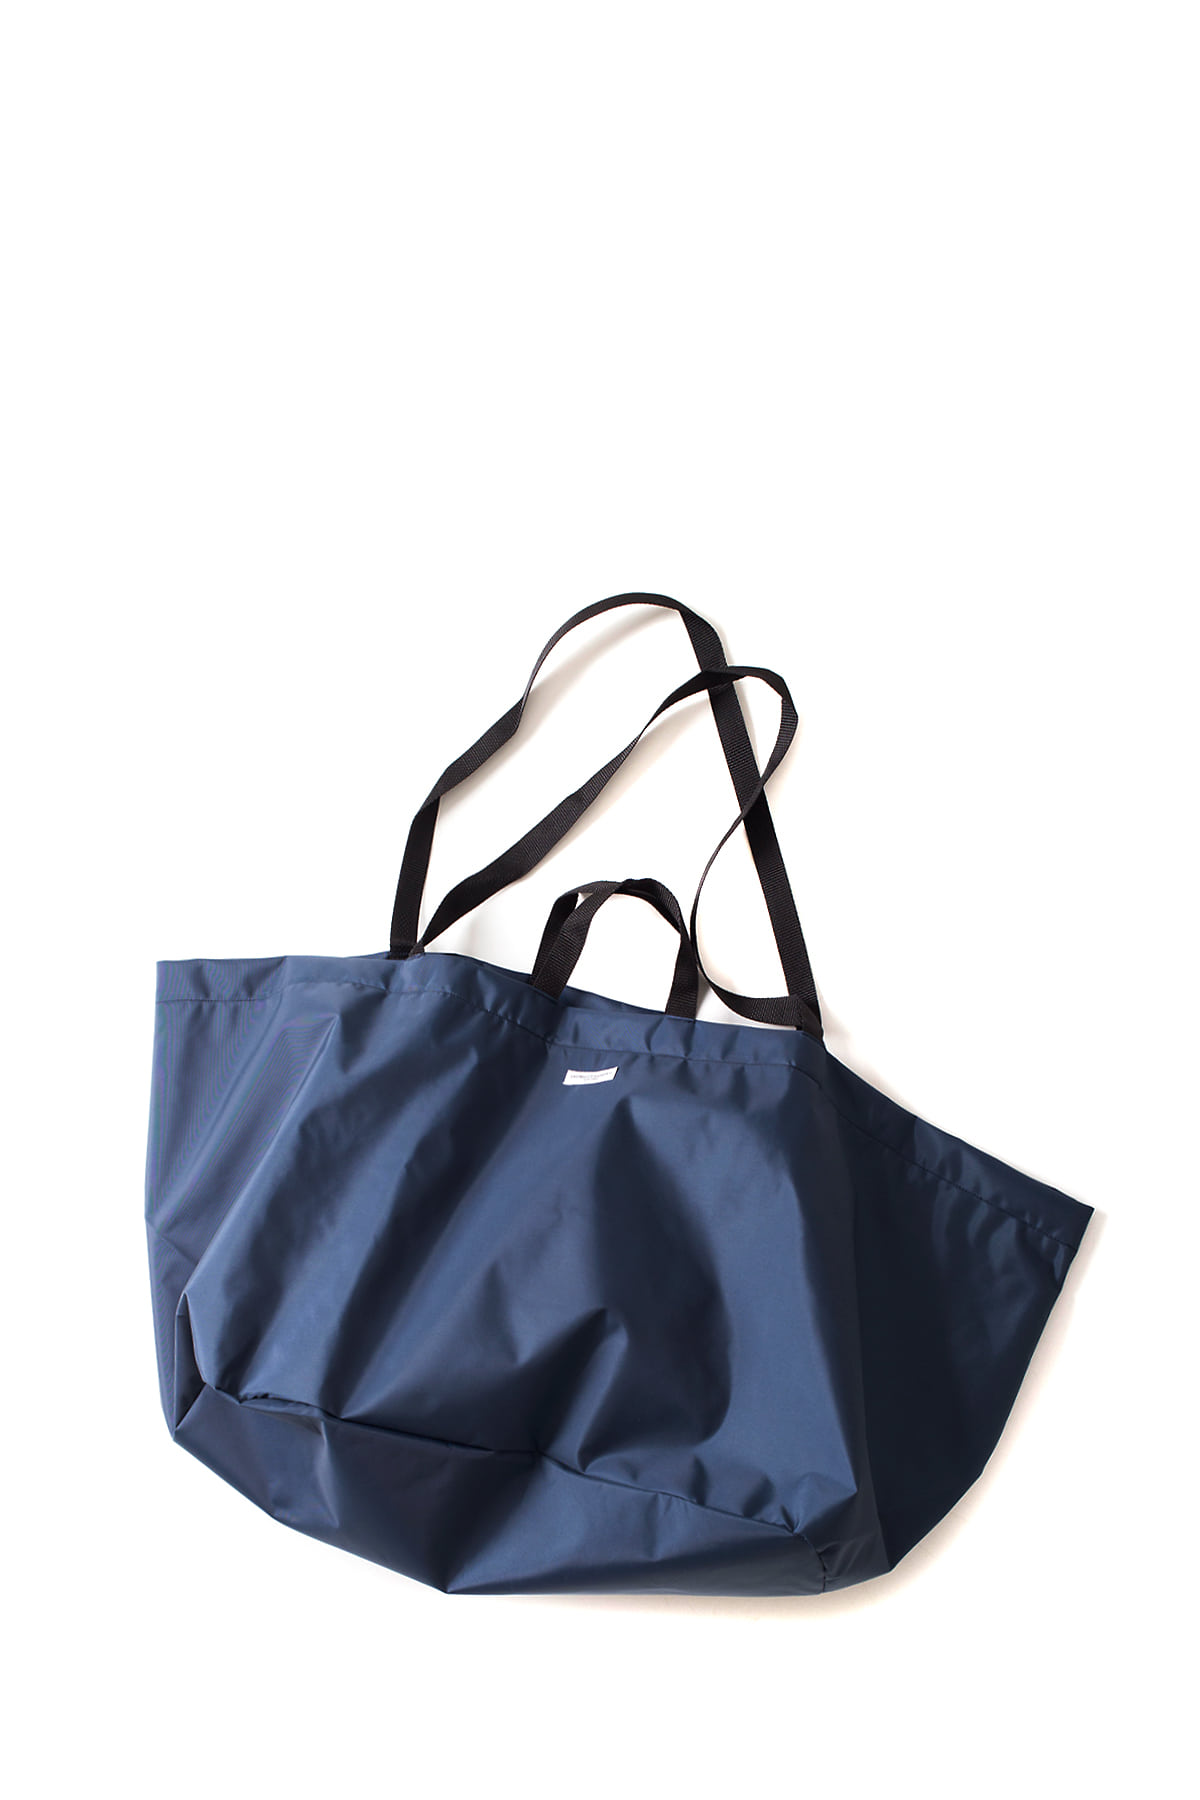 Engineered Garments : Weekend Bag (DK.Navy Pack)